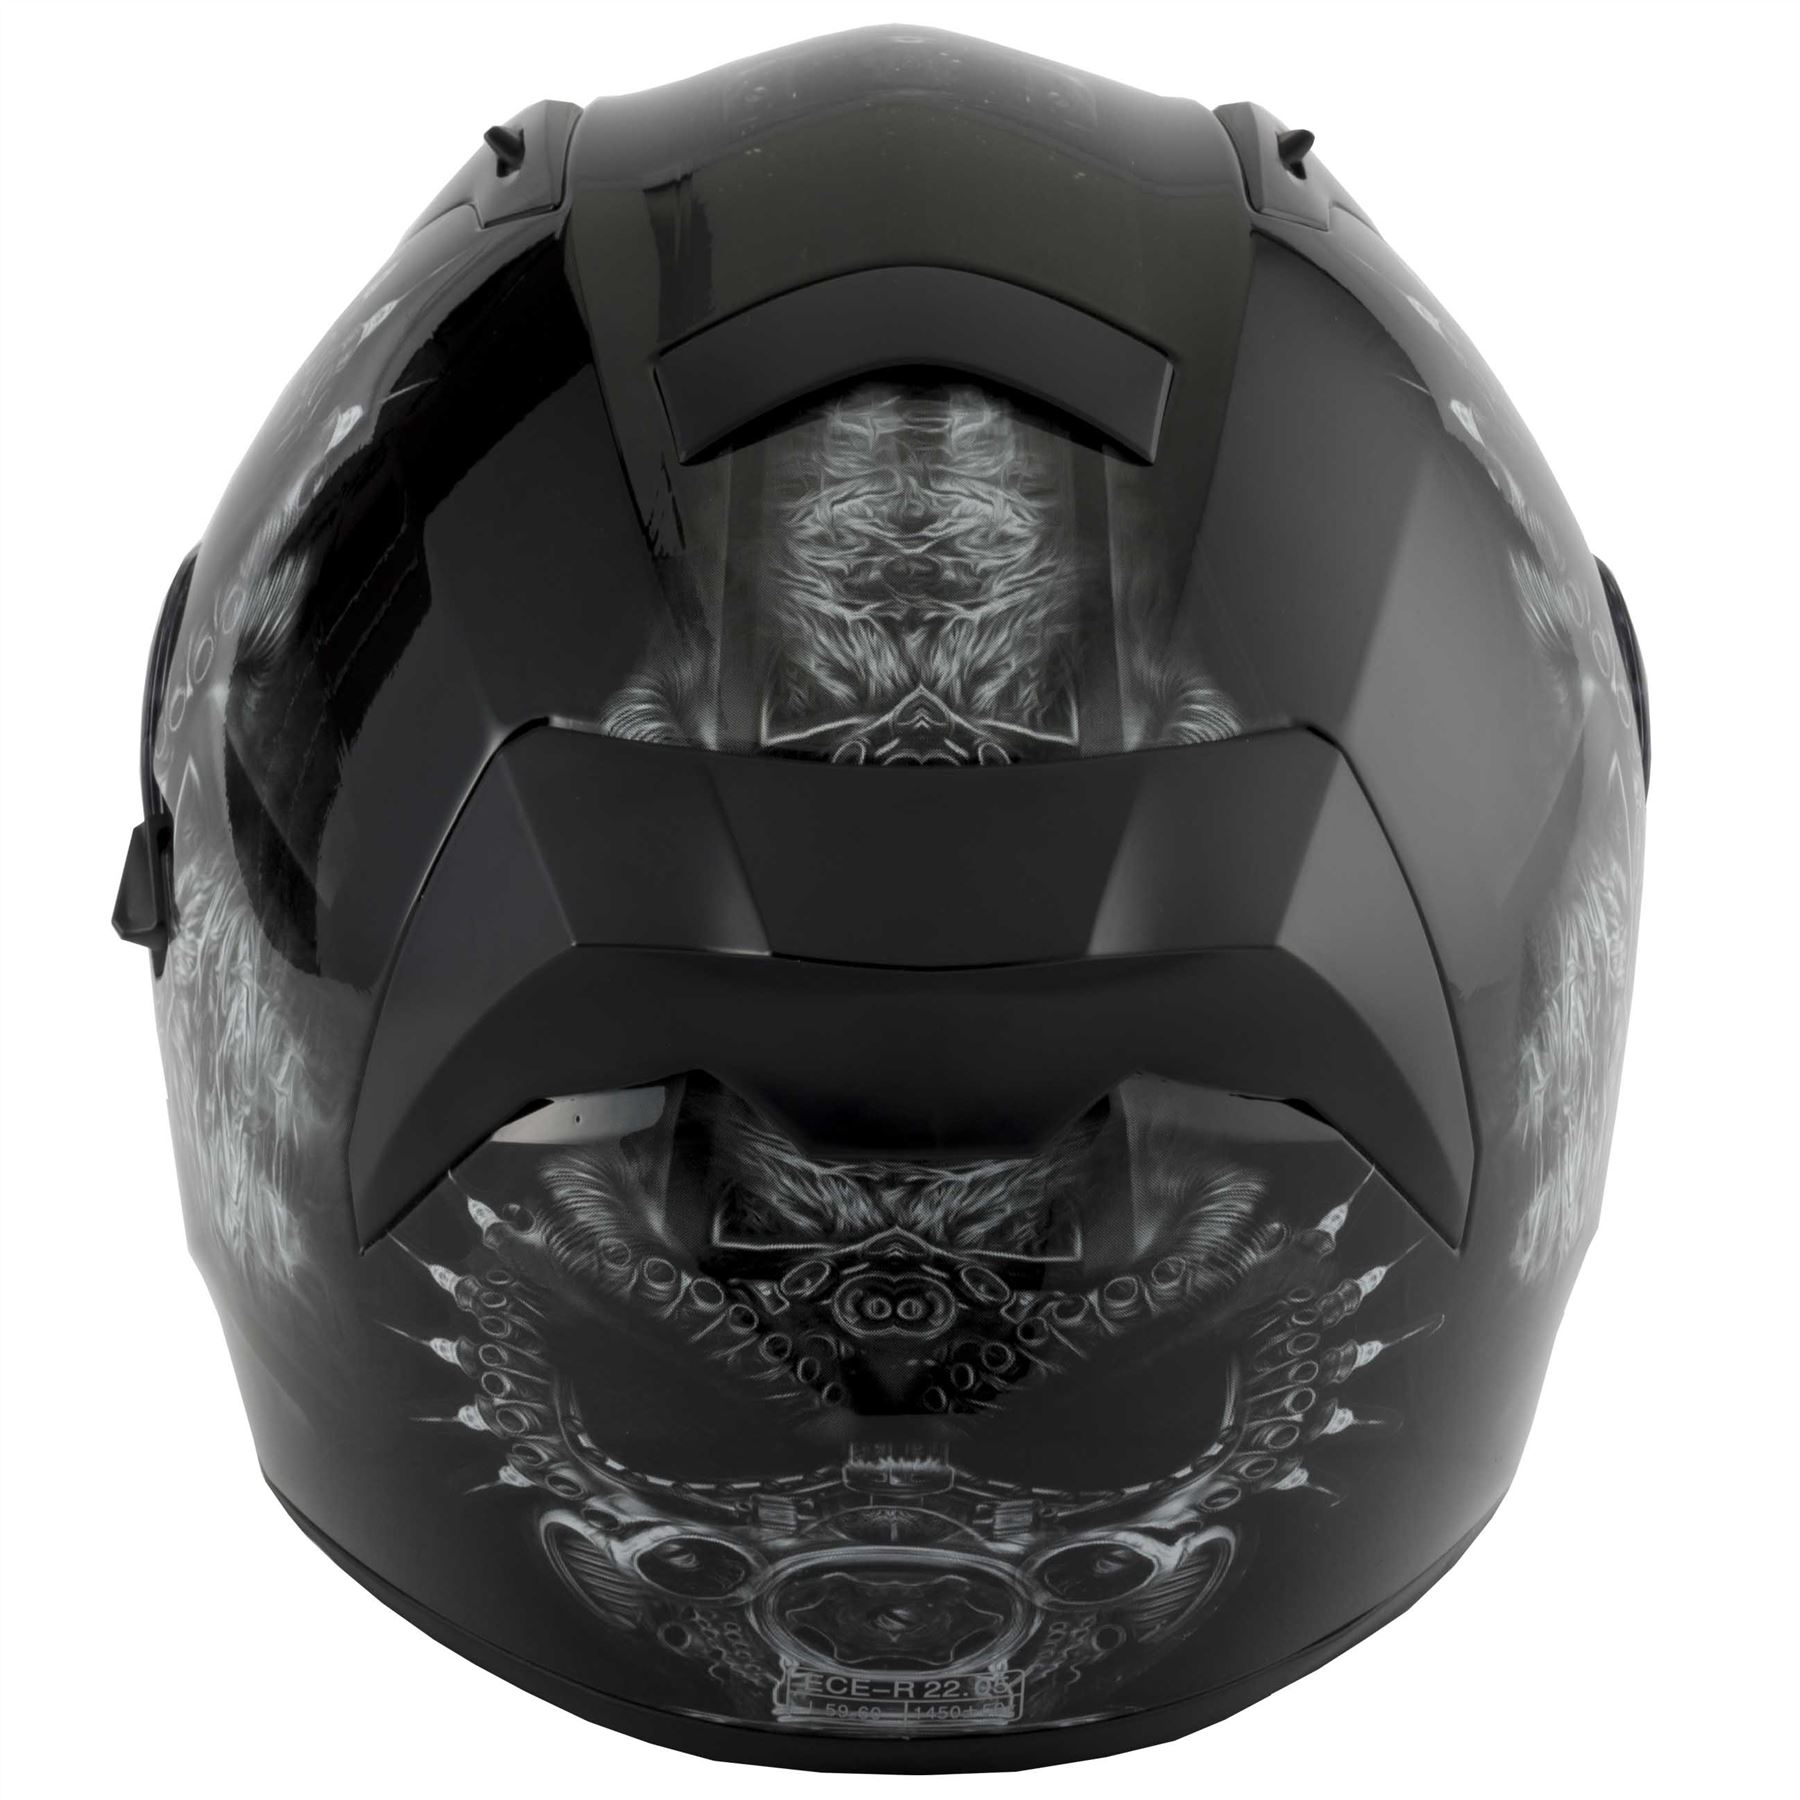 thumbnail 22 - VCAN V128 Dragon Skull Monster Motorcycle Bike Helmet With Drop Down Sun Visor